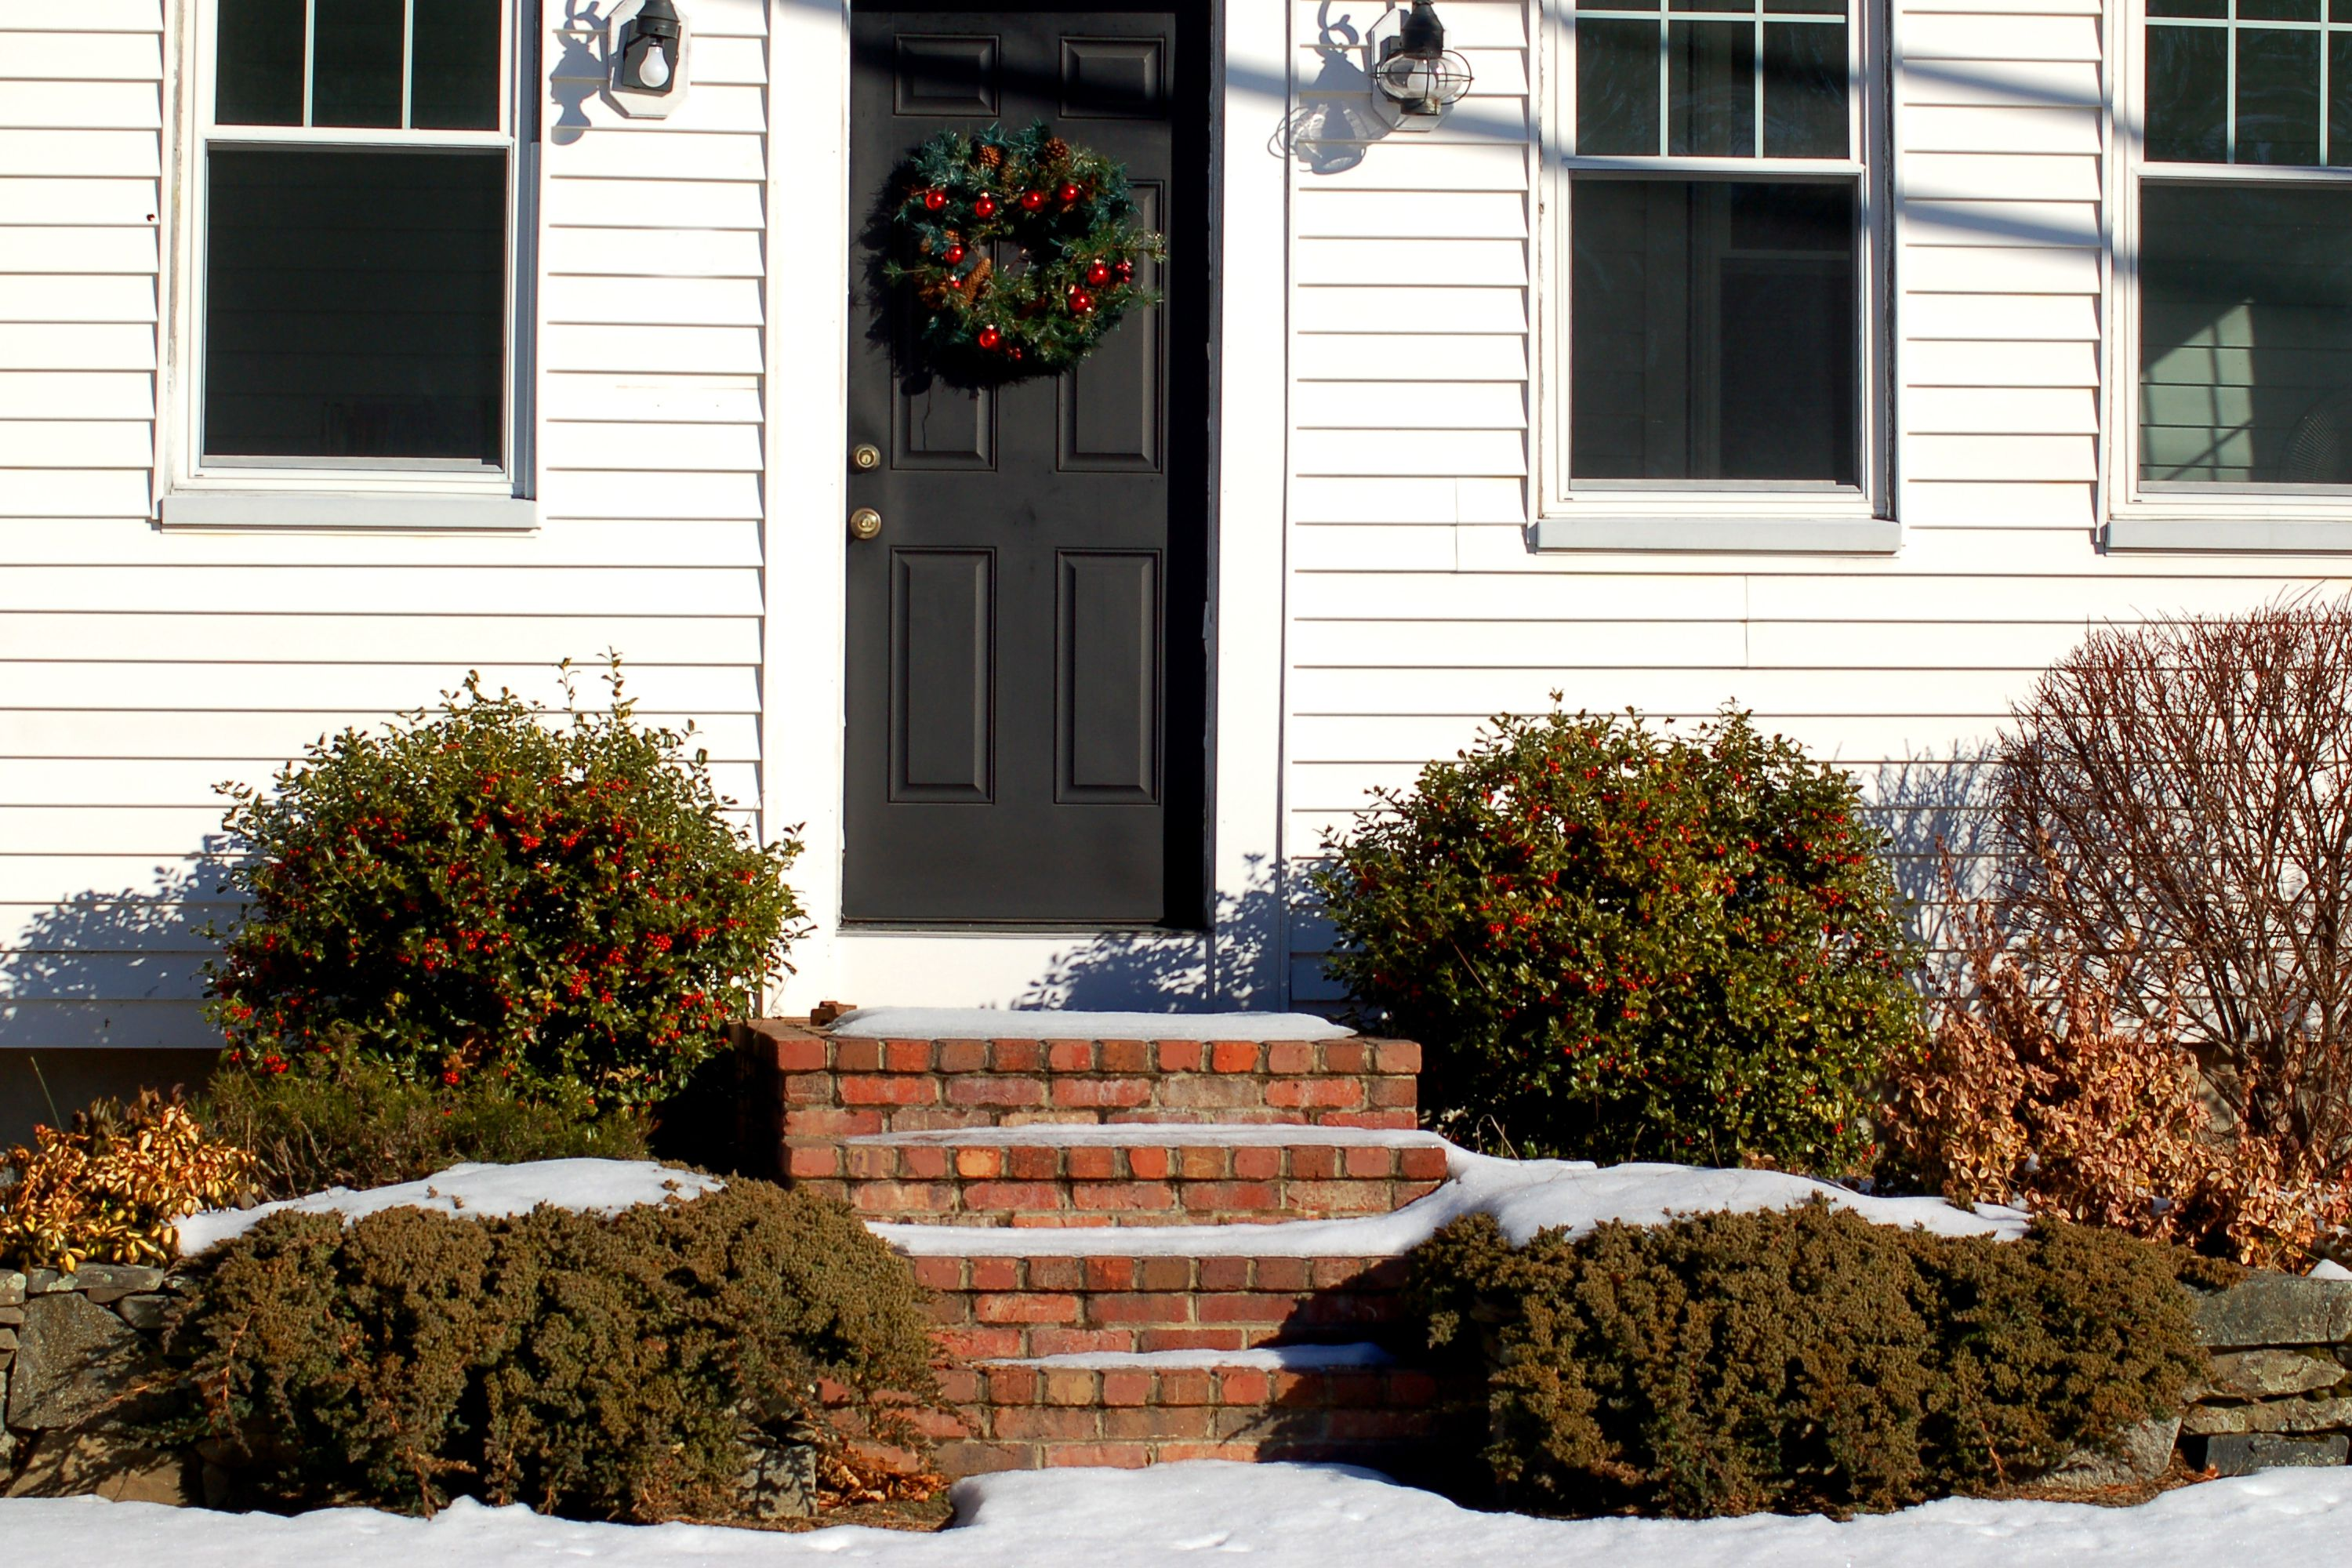 Photo shows that the best outdoor Christmas decorations can just be good landscaping.